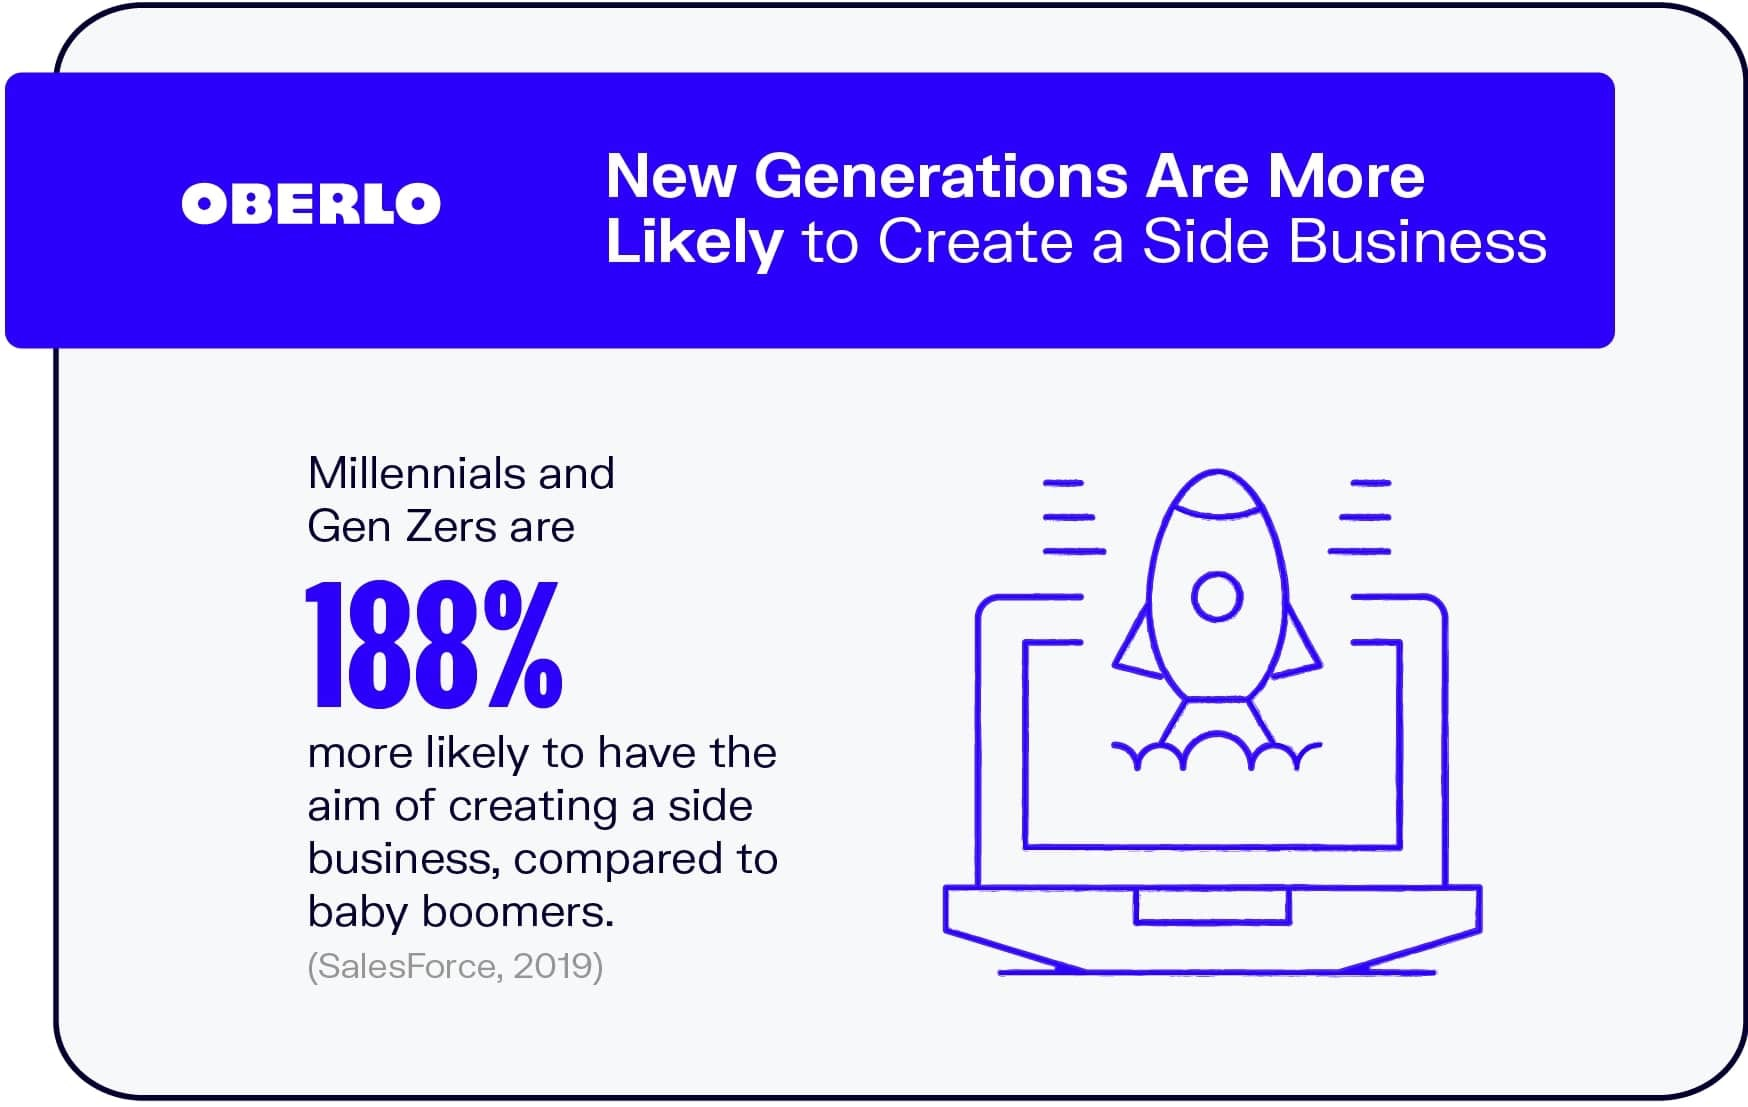 New Generations Are More Likely to Create a Side Business